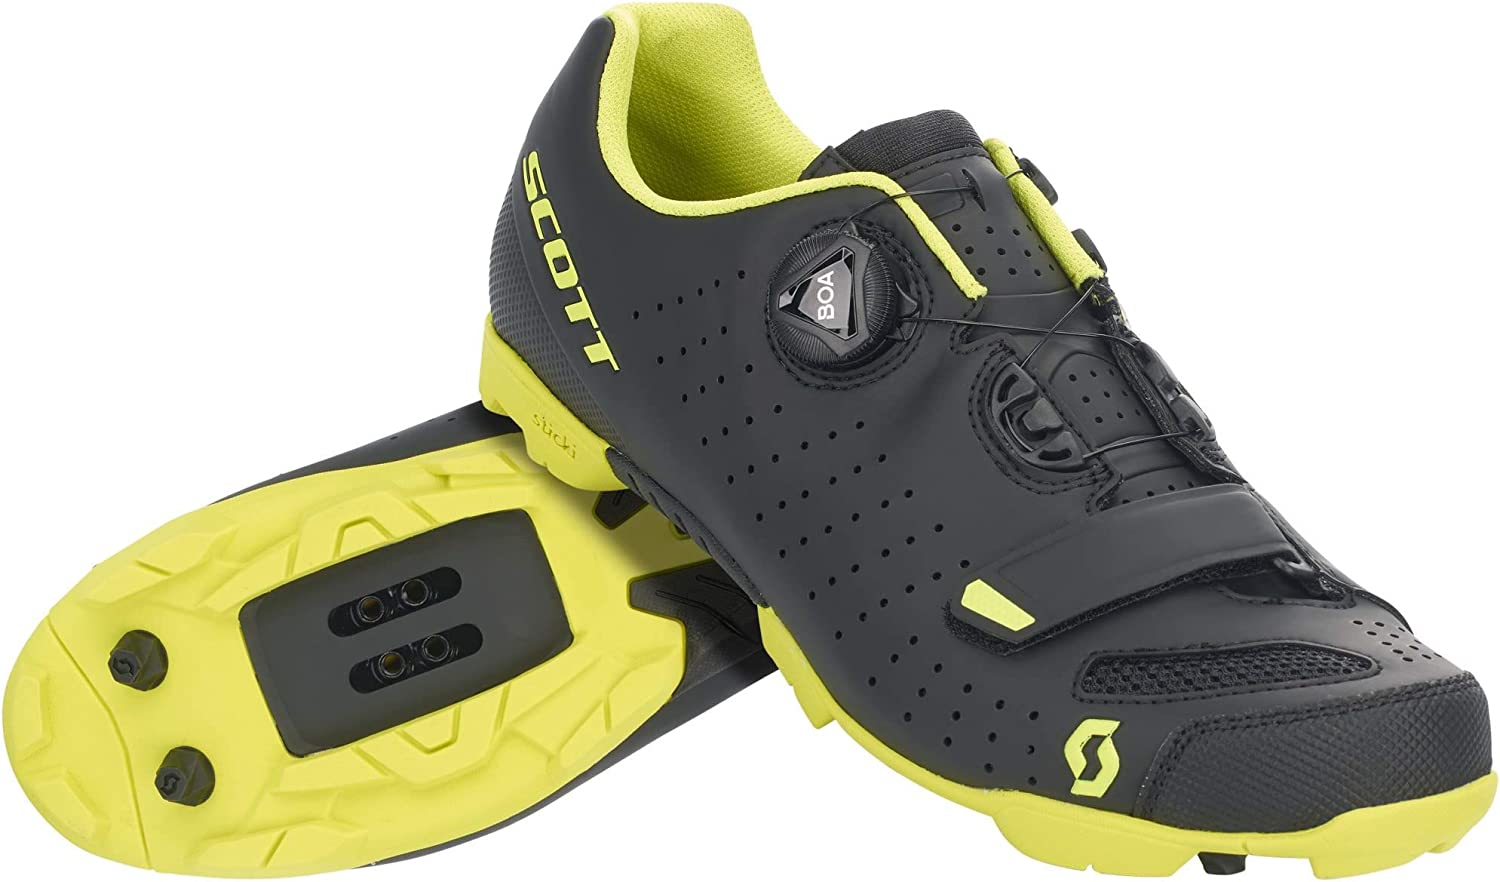 Scott MTB Comp Boa 2020 - Zapatillas de ciclismo, color negro y amarillo